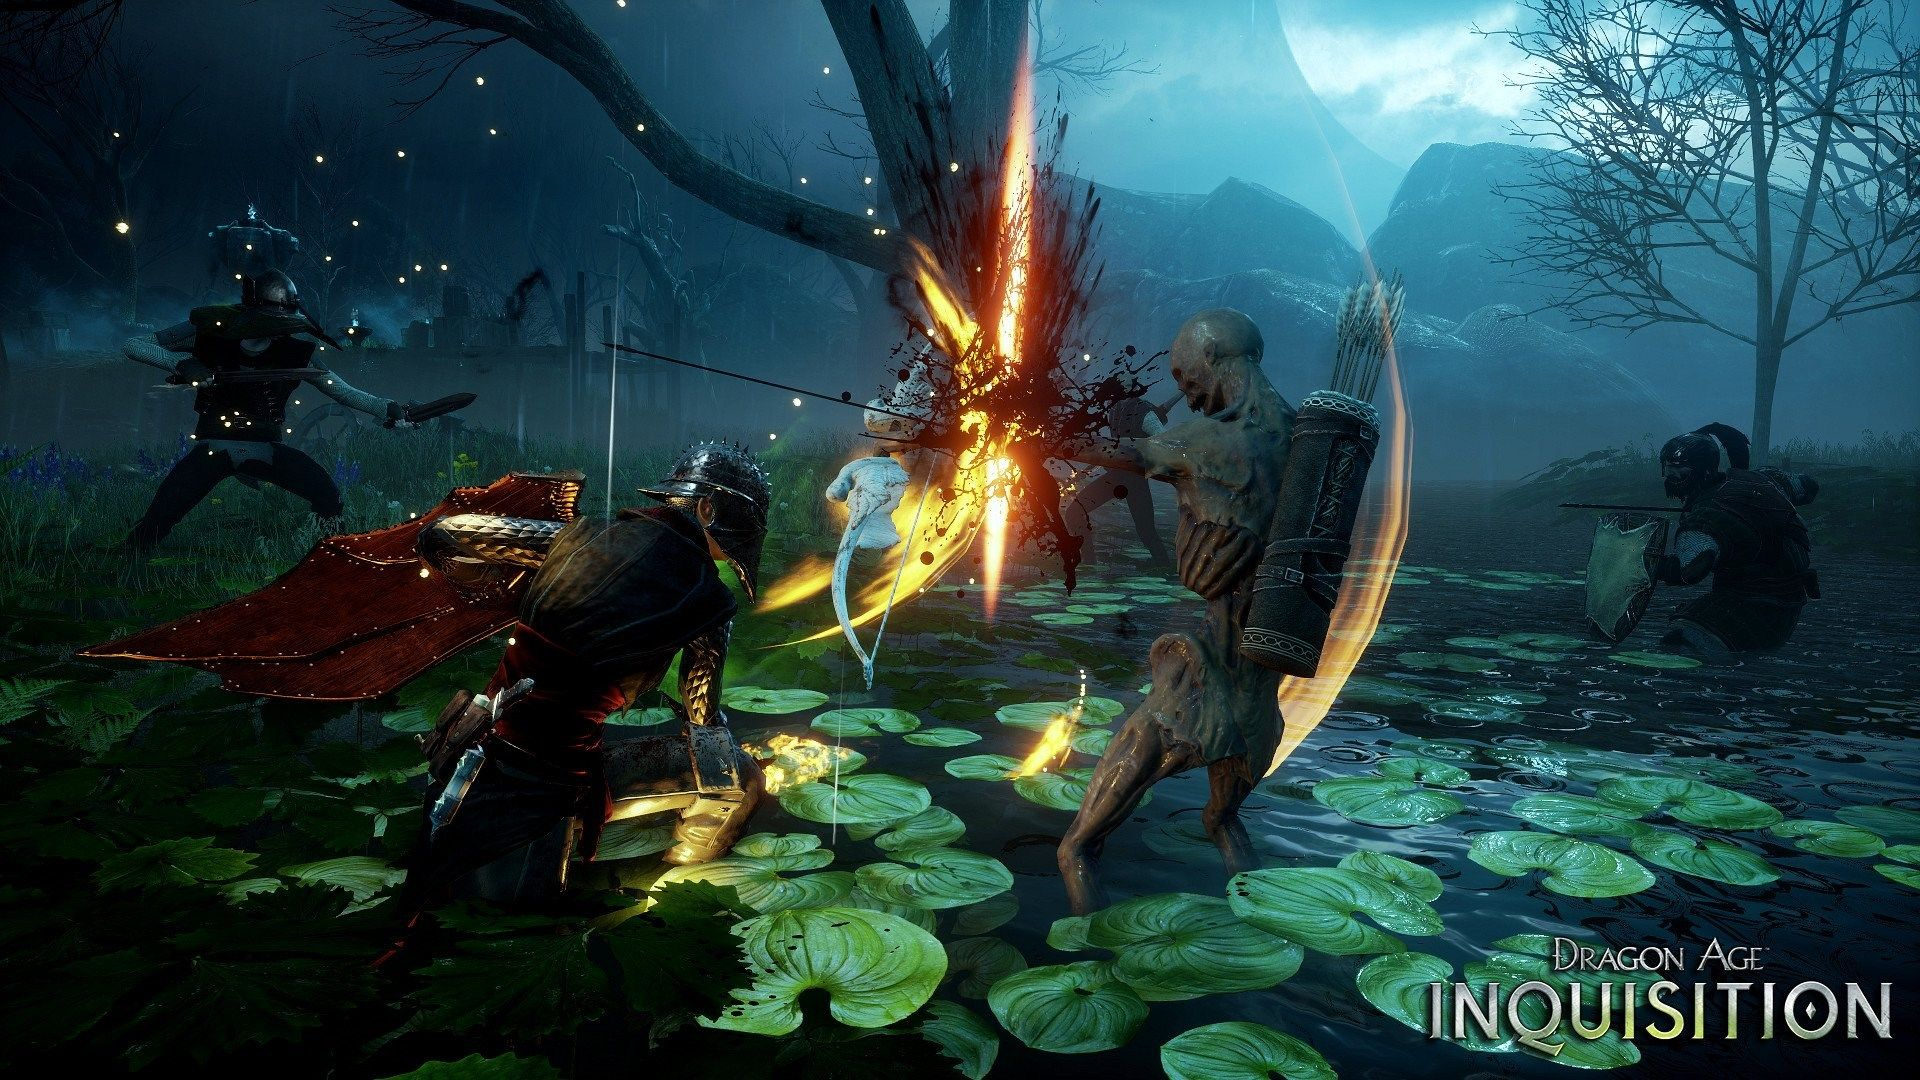 Dragon Age Inquisition Free Hd Widescreen 1920x1080 Dragon Age Inquisition Dragon Age Call Of Duty Ghosts